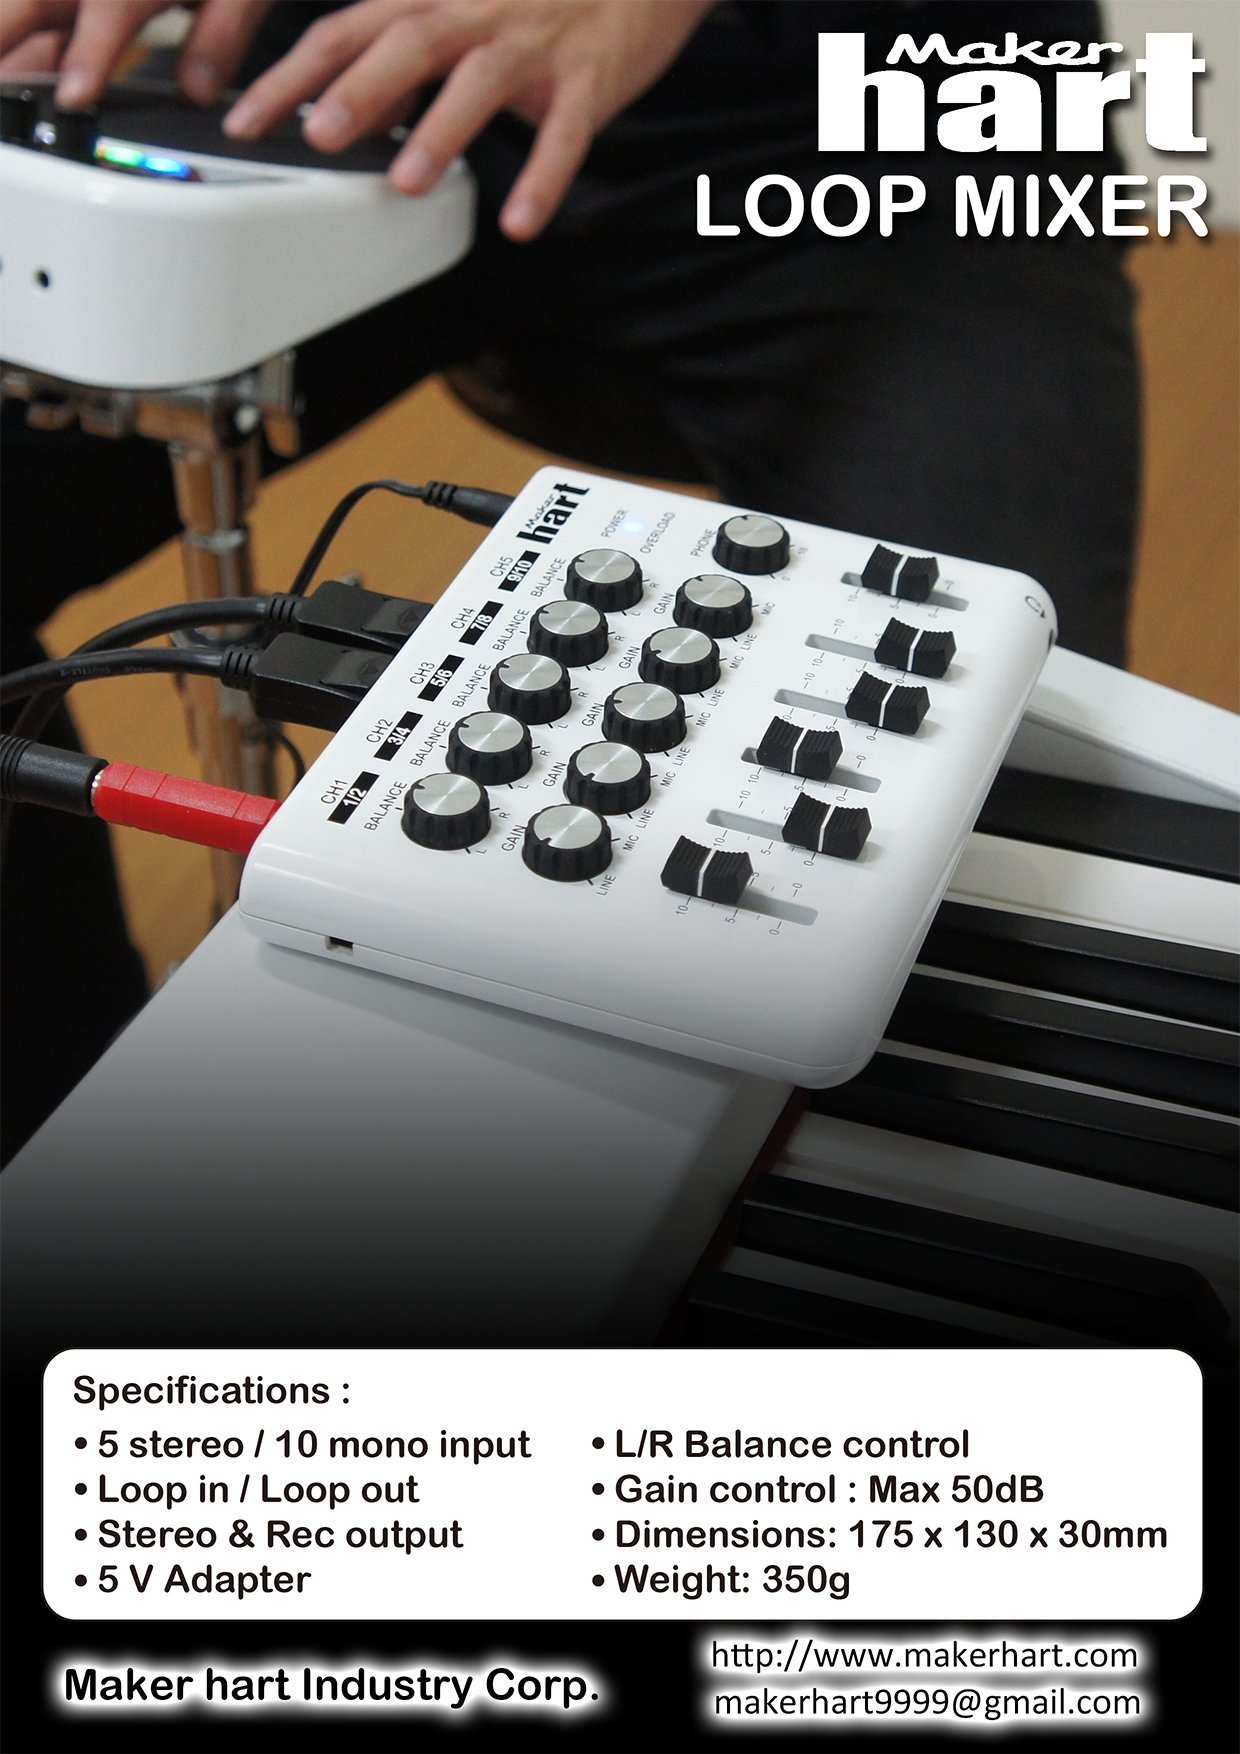 Maker Hart Loop Mixer Portable Audio With 5 Channels X 1 Channel Versatility Mix Music From Computers Smartphones Tablets Gaming Consoles Amazon Echo Dot Mics And Instruments